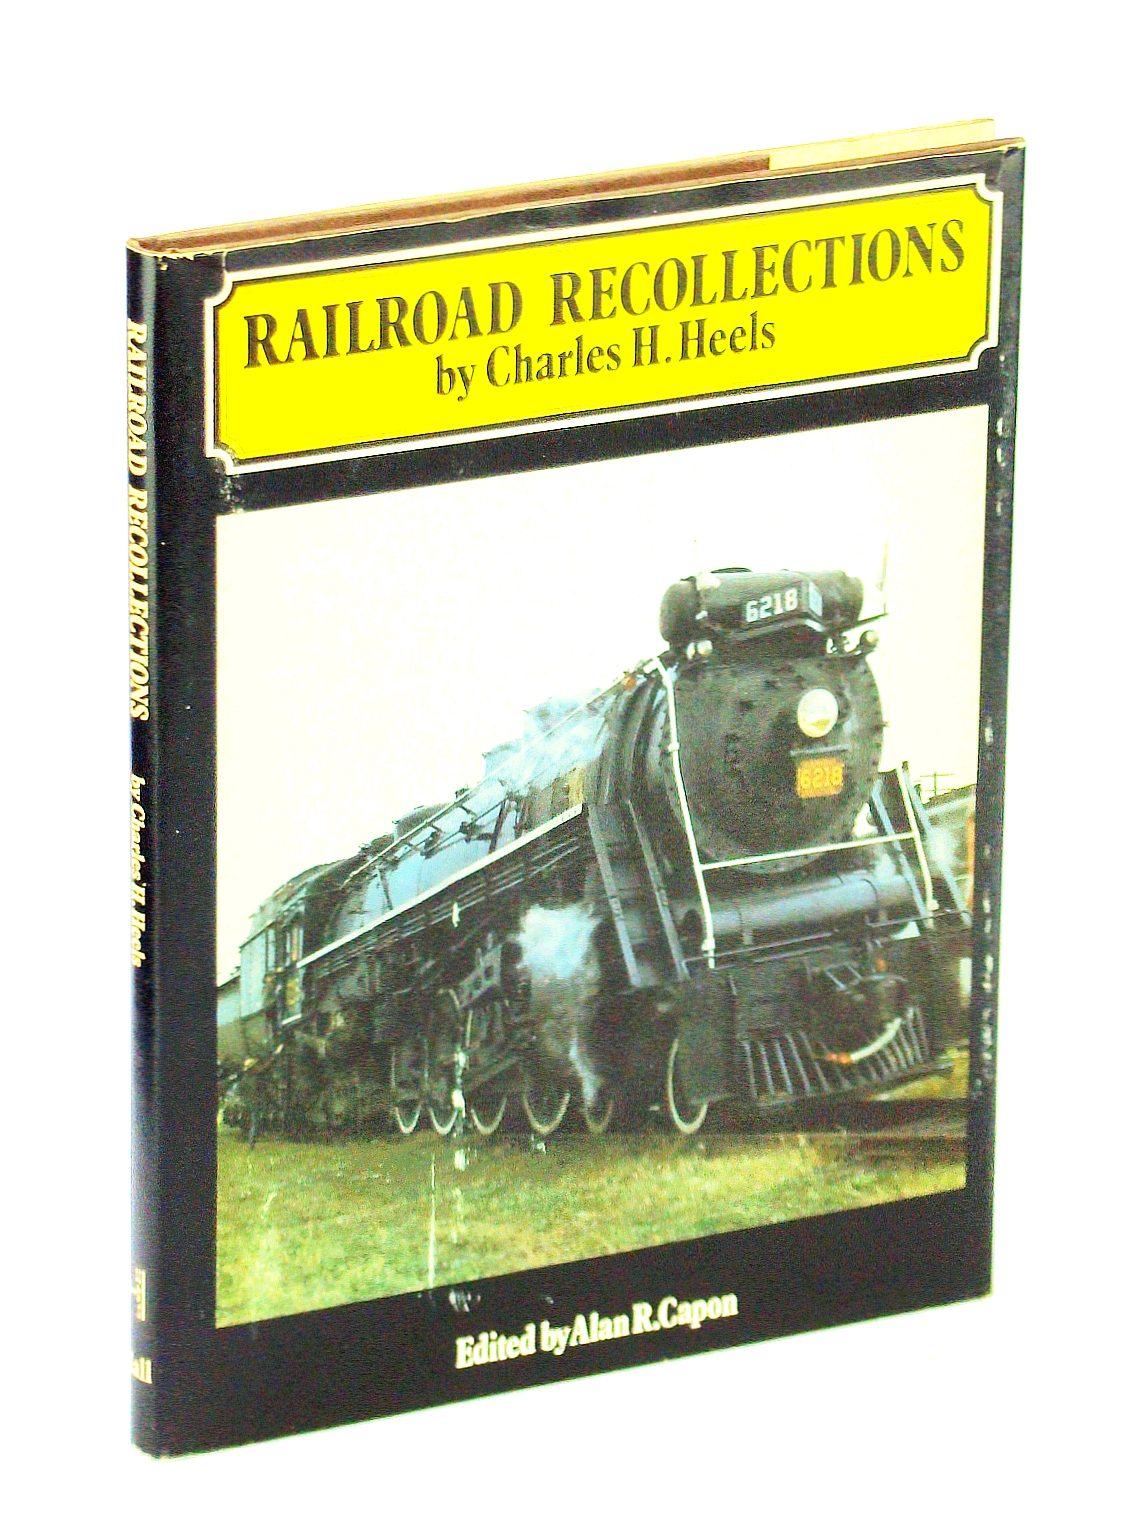 Image for Railroad recollections